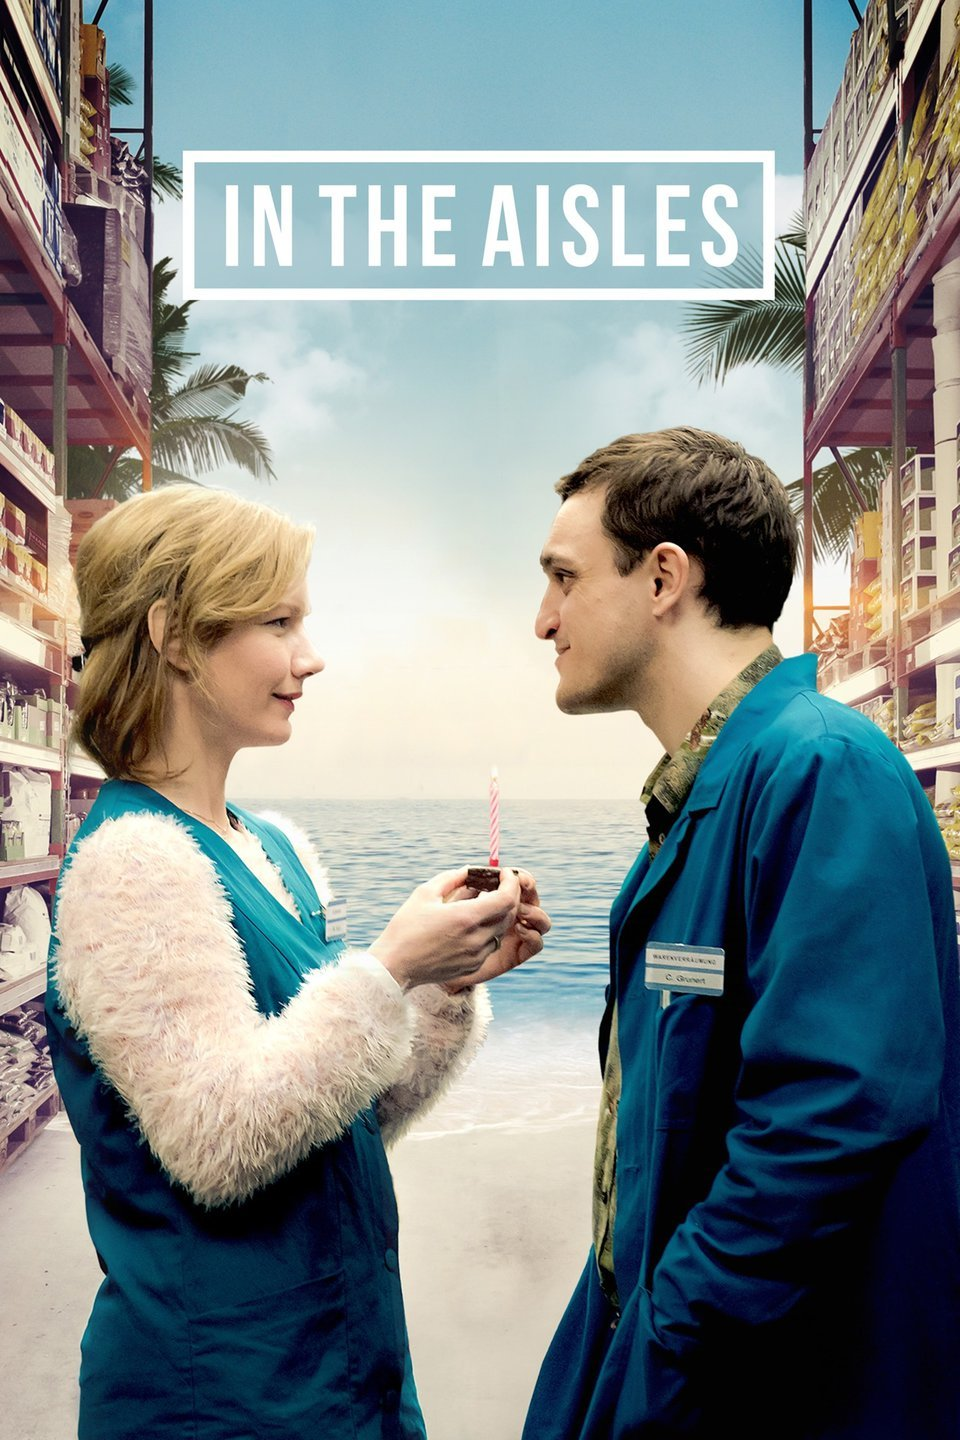 Foreign Cinema Series: In the Aisles (Germany, 2018; Not Rated)